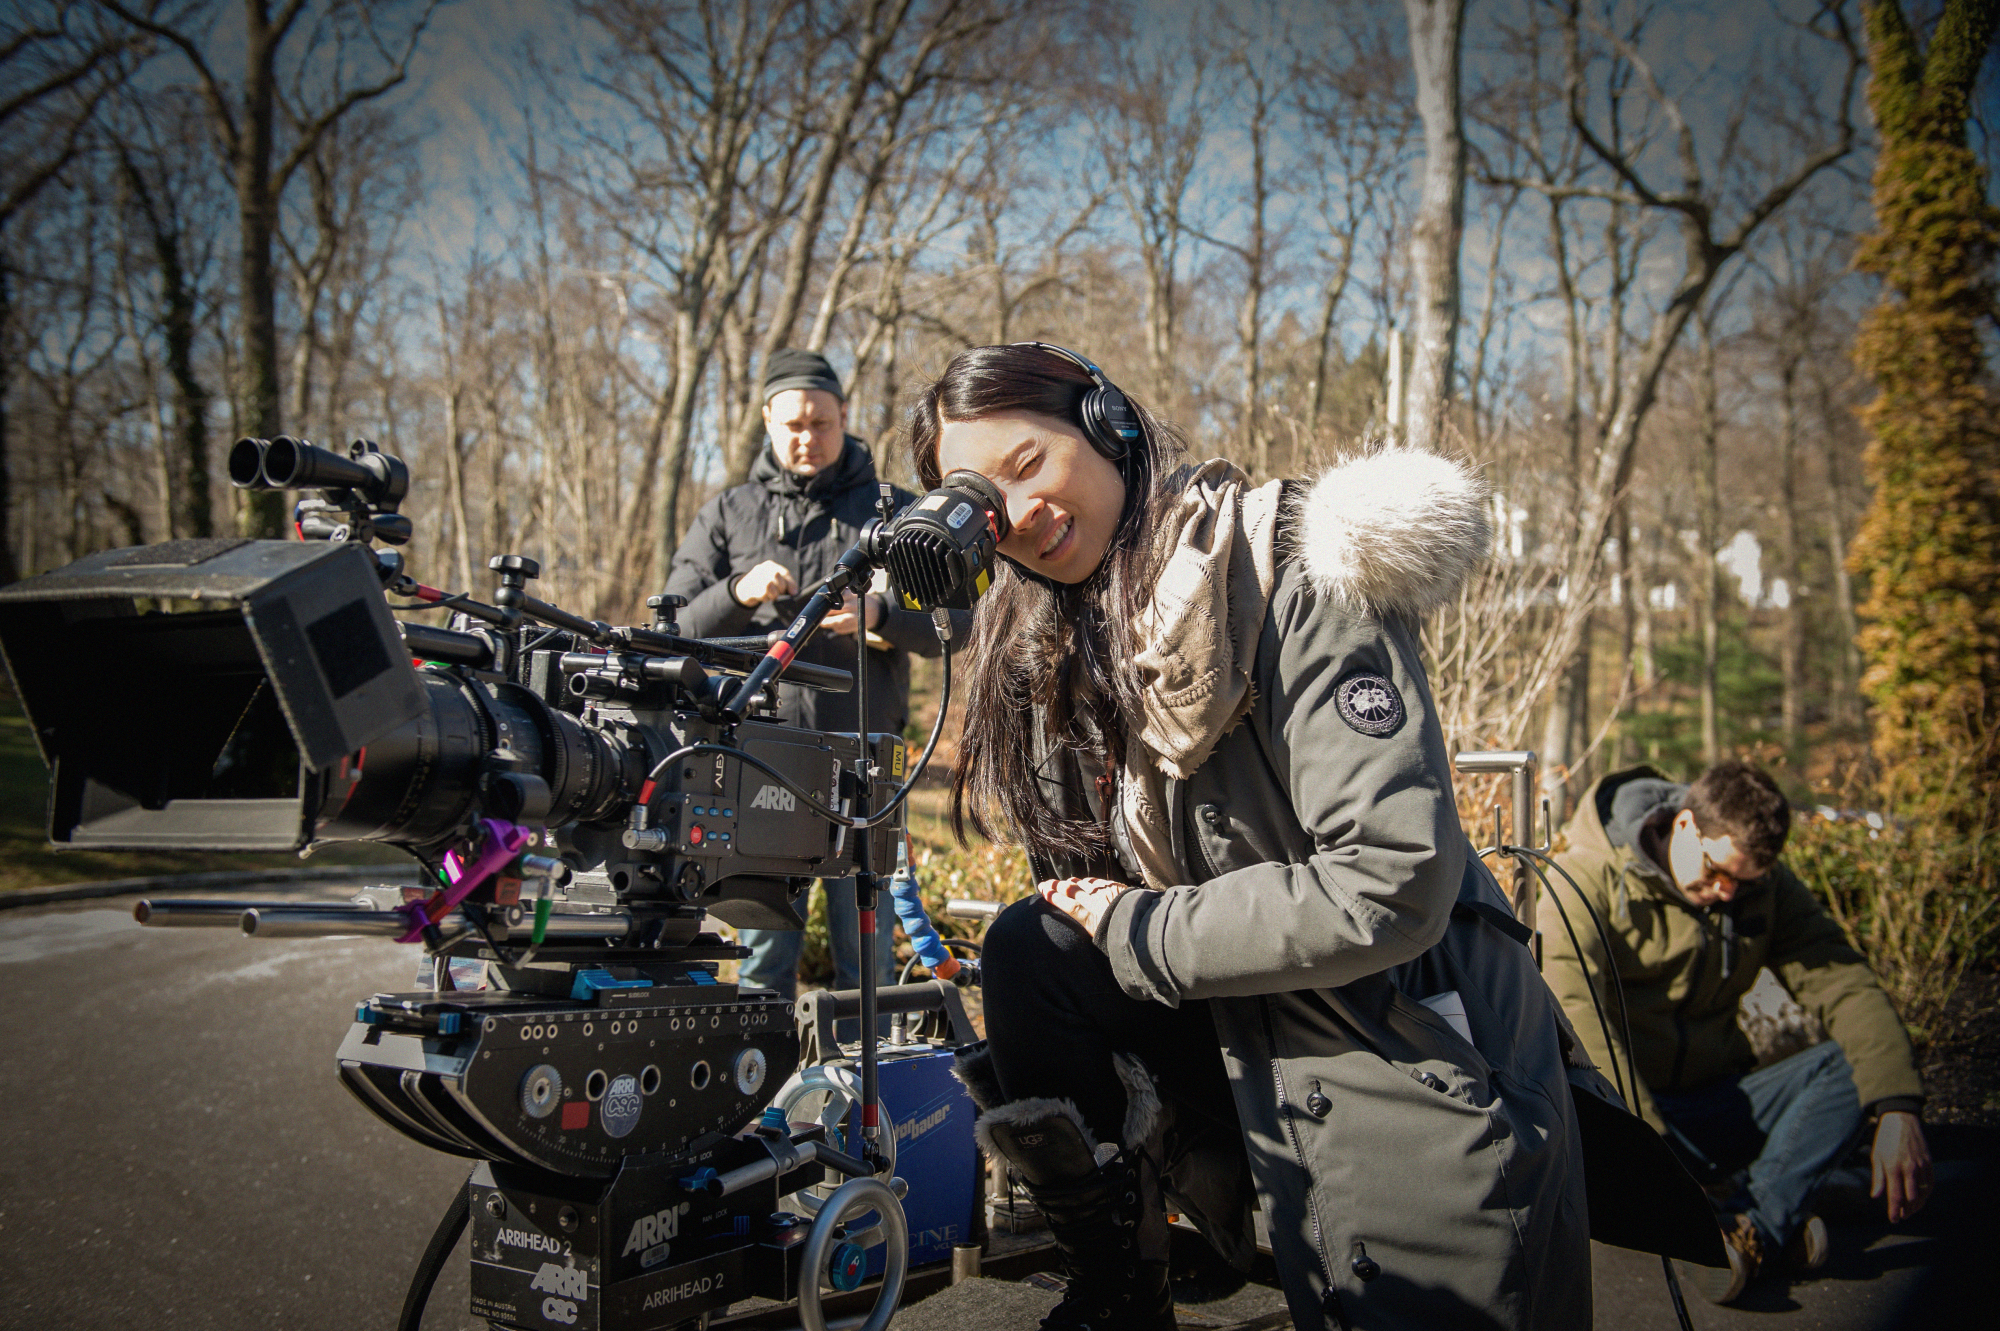 Lucy Liu makes her directorial debut for television in